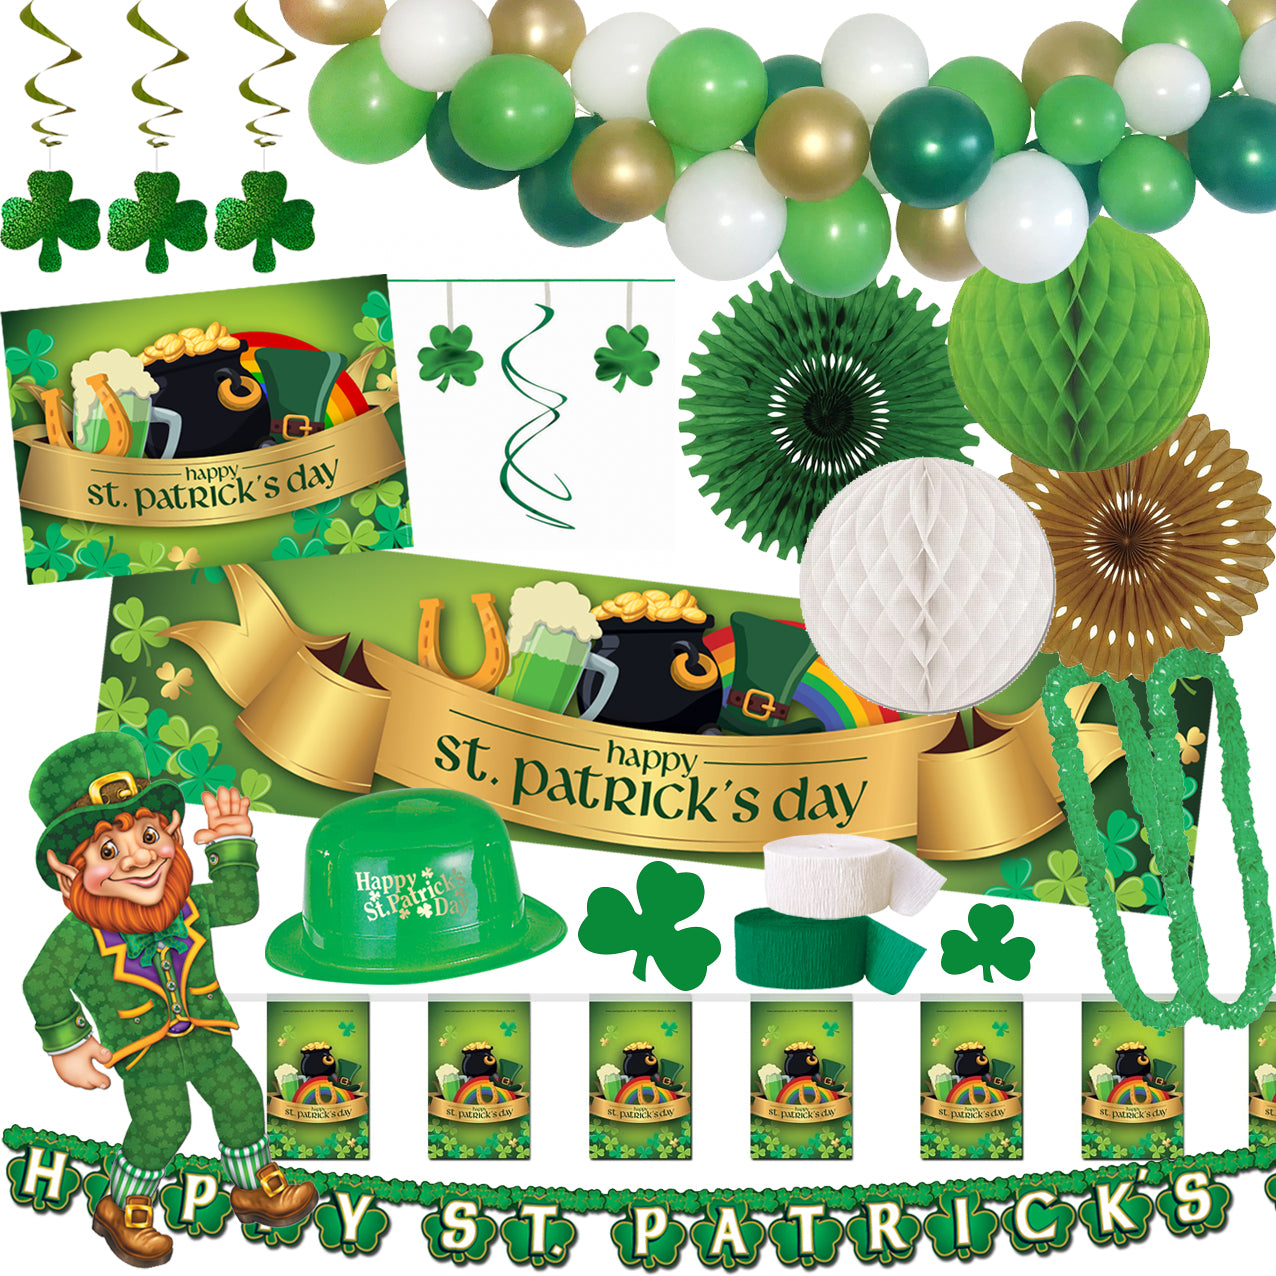 St. Patrick's Day Party Pack